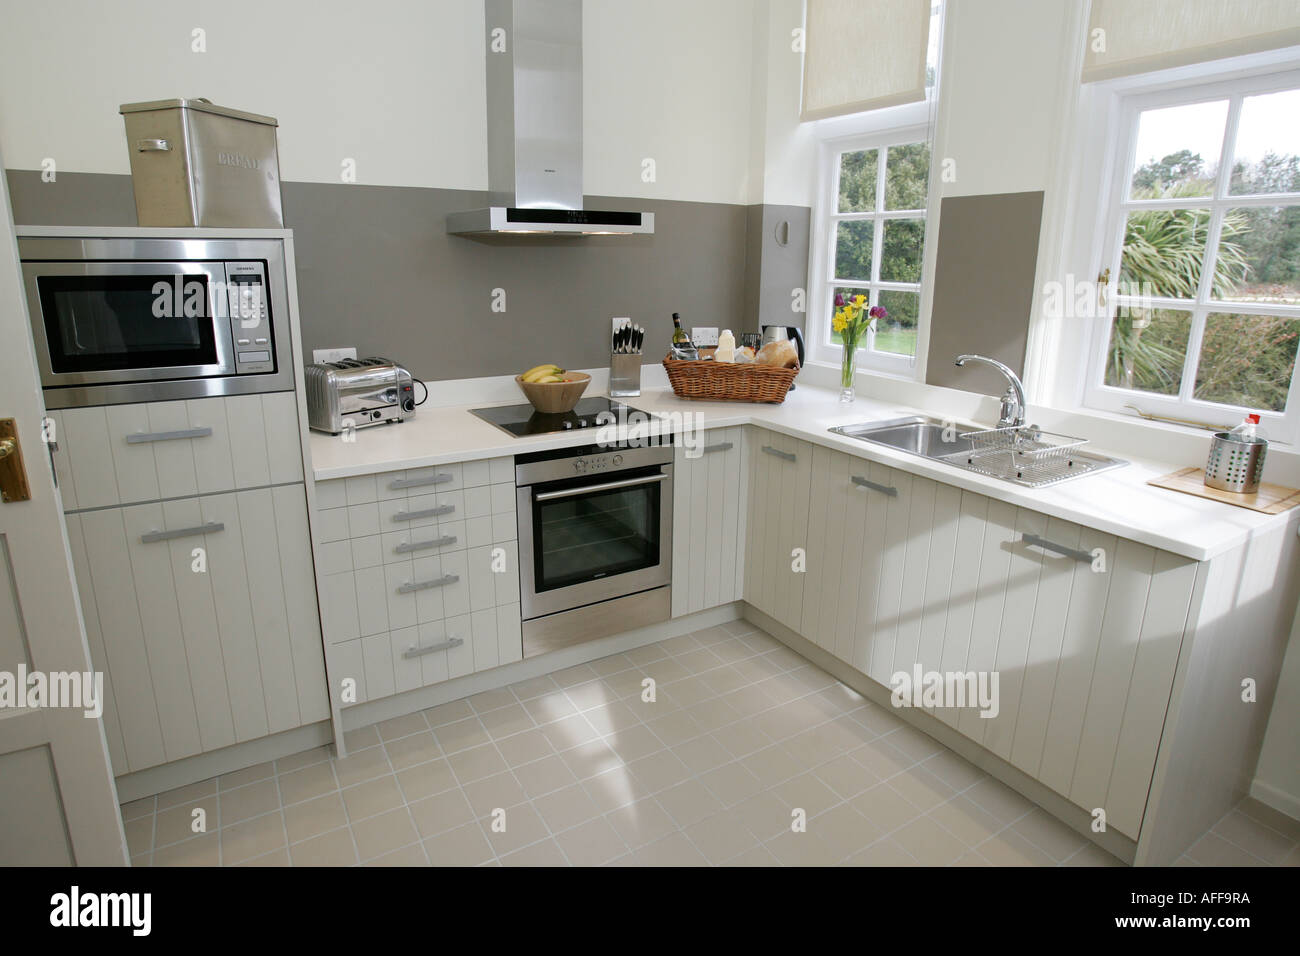 Modern White Shaker Kitchen white kitchen white units stainless stock photos & white kitchen